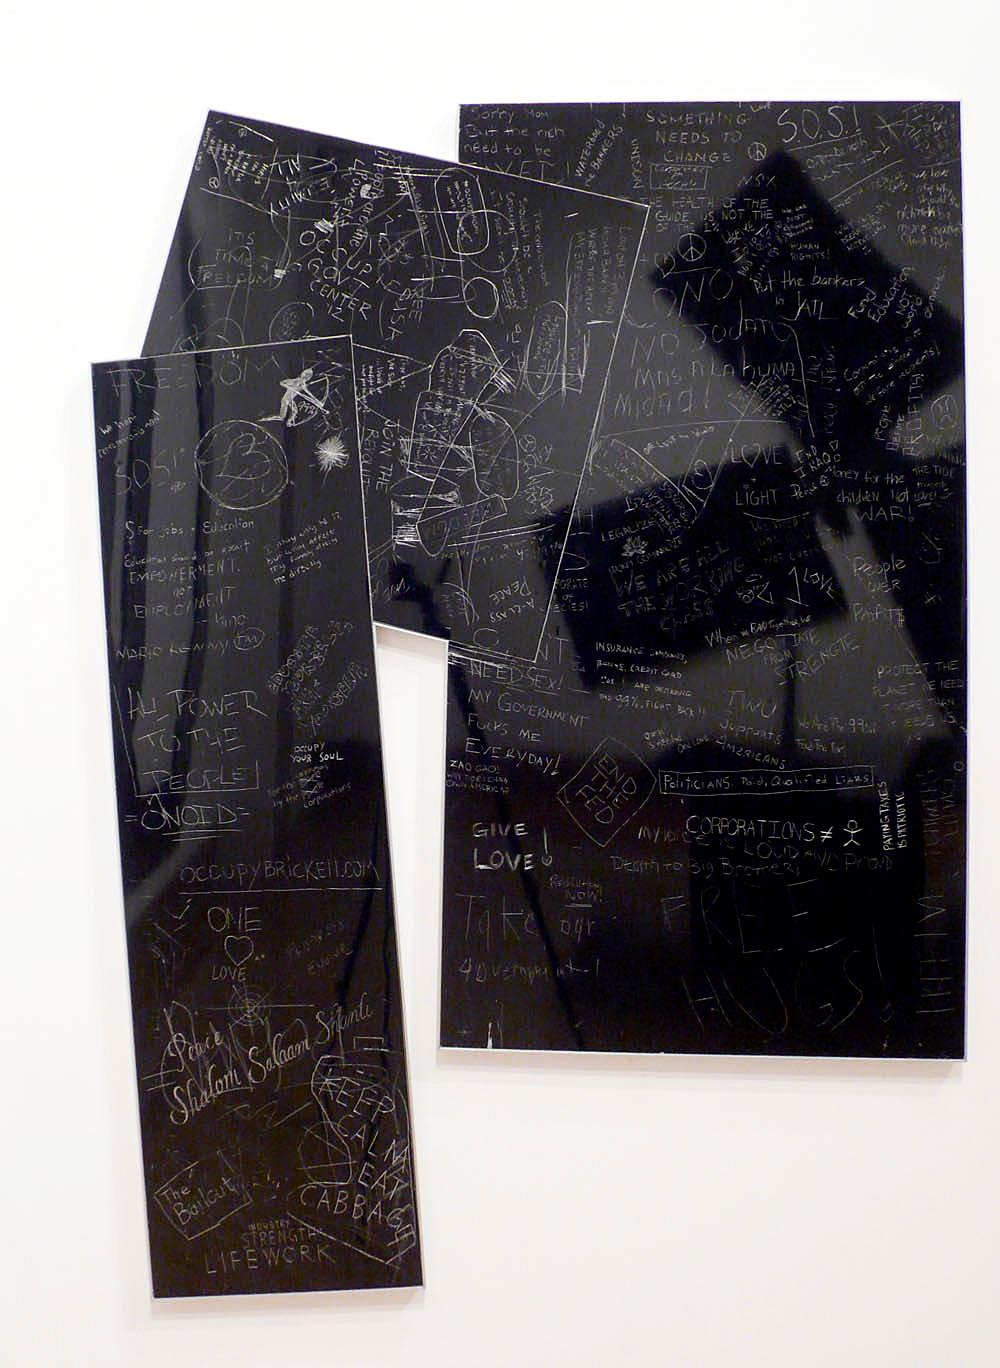 Protest ad Occupy,Joined, carved aluminum composite panels with baked enamel finish and artist frame, 60 X 42 inches, 2012